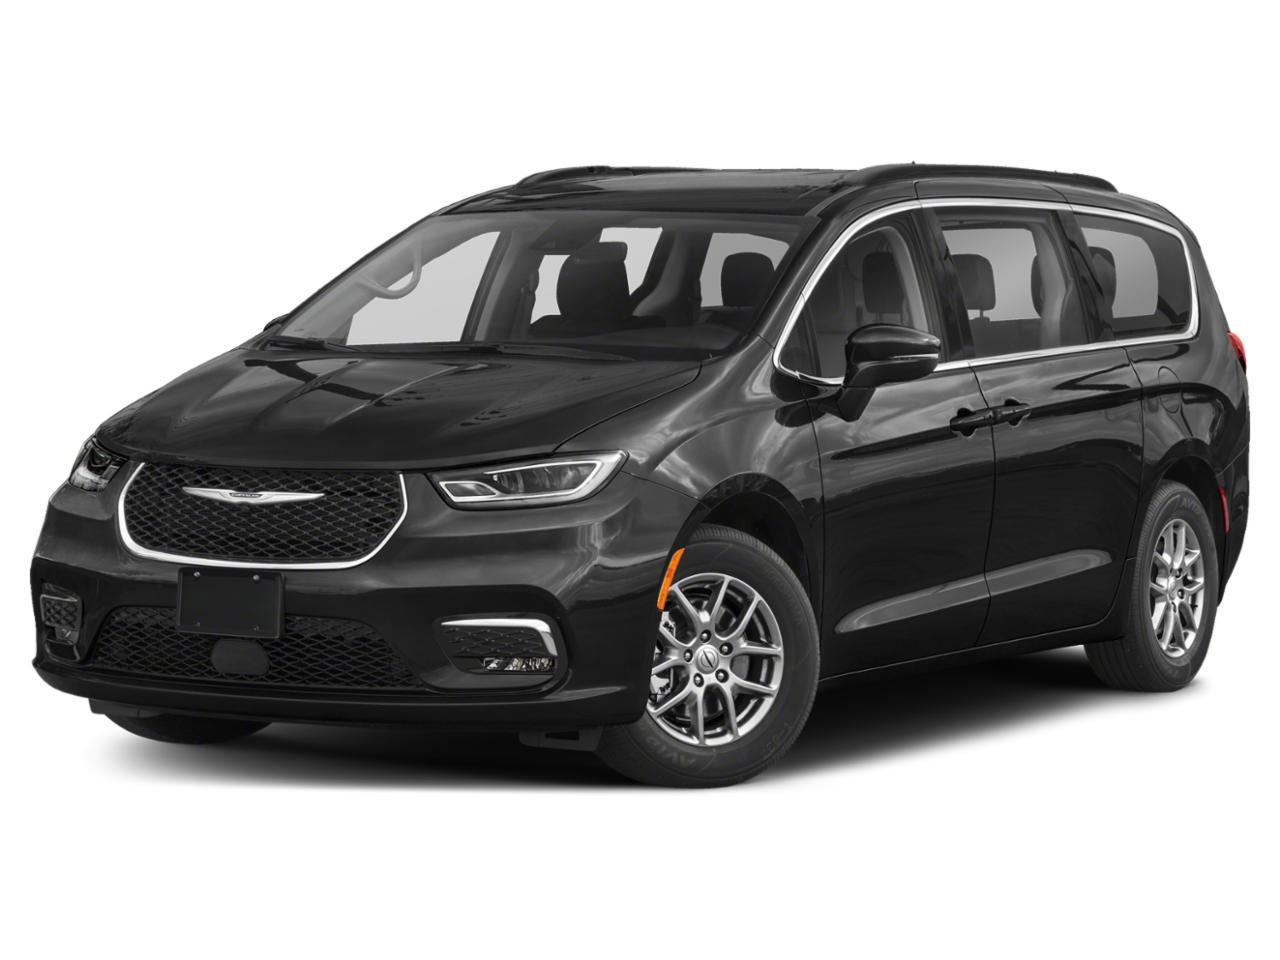 2021 Chrysler Pacifica Vehicle Photo in Oshkosh, WI 54901